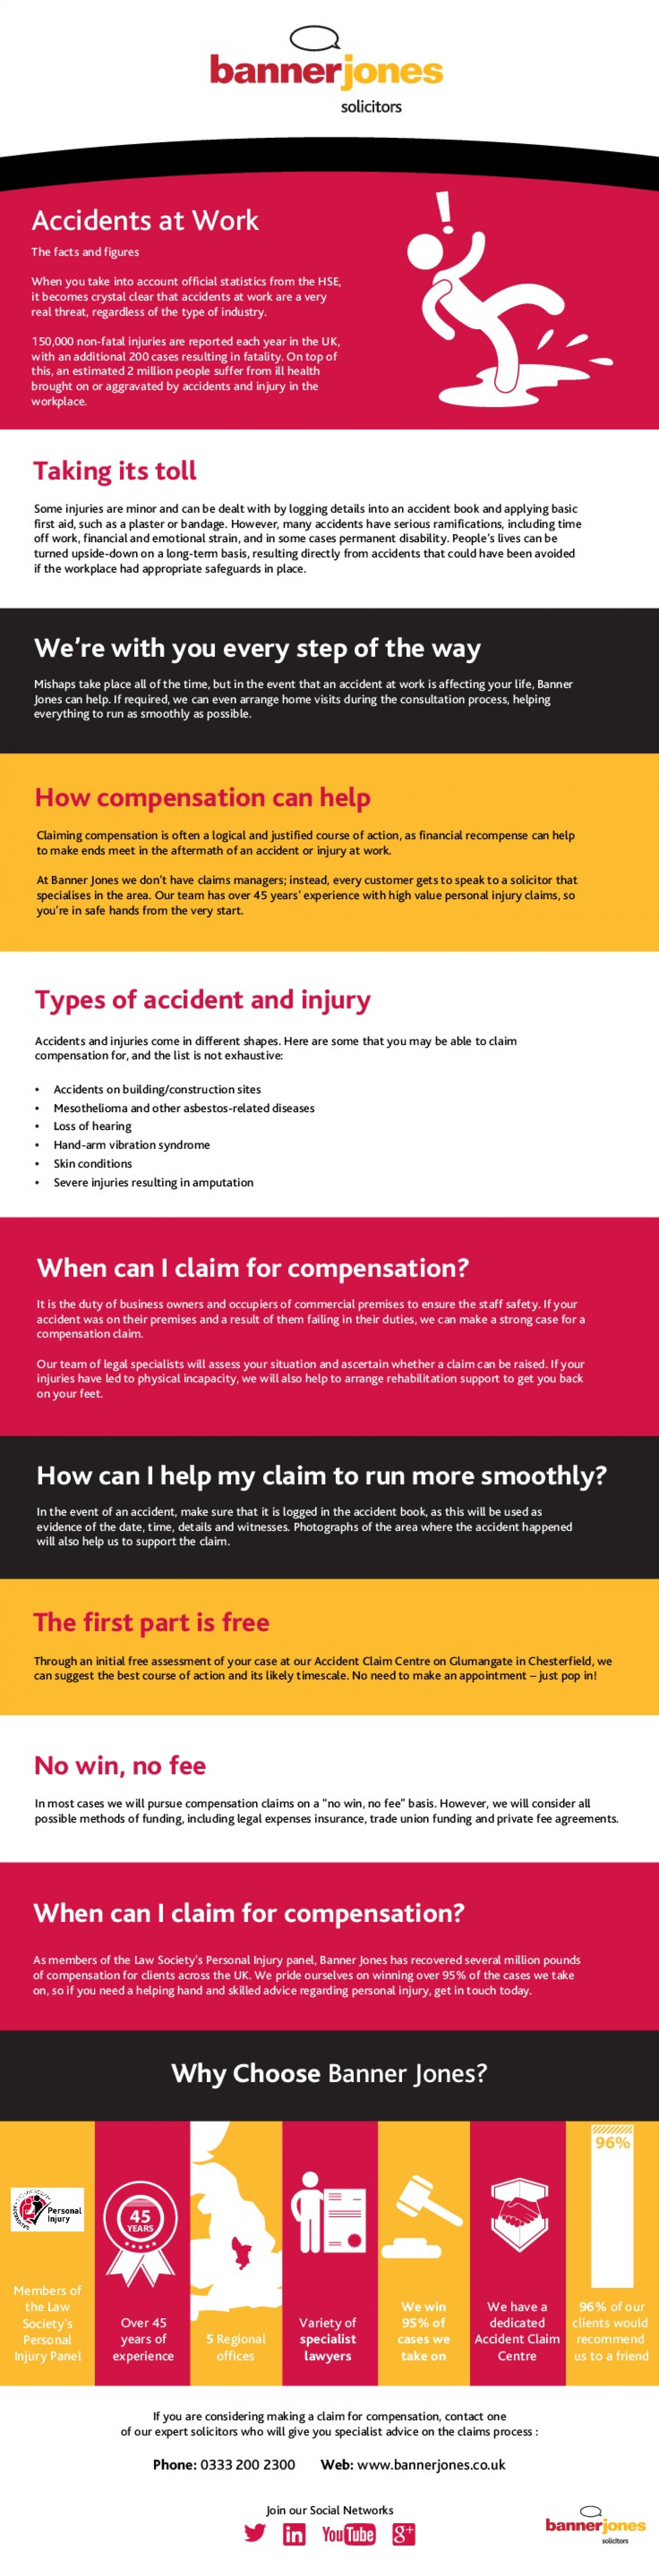 Personal Injury - Accidents at Work Infographic